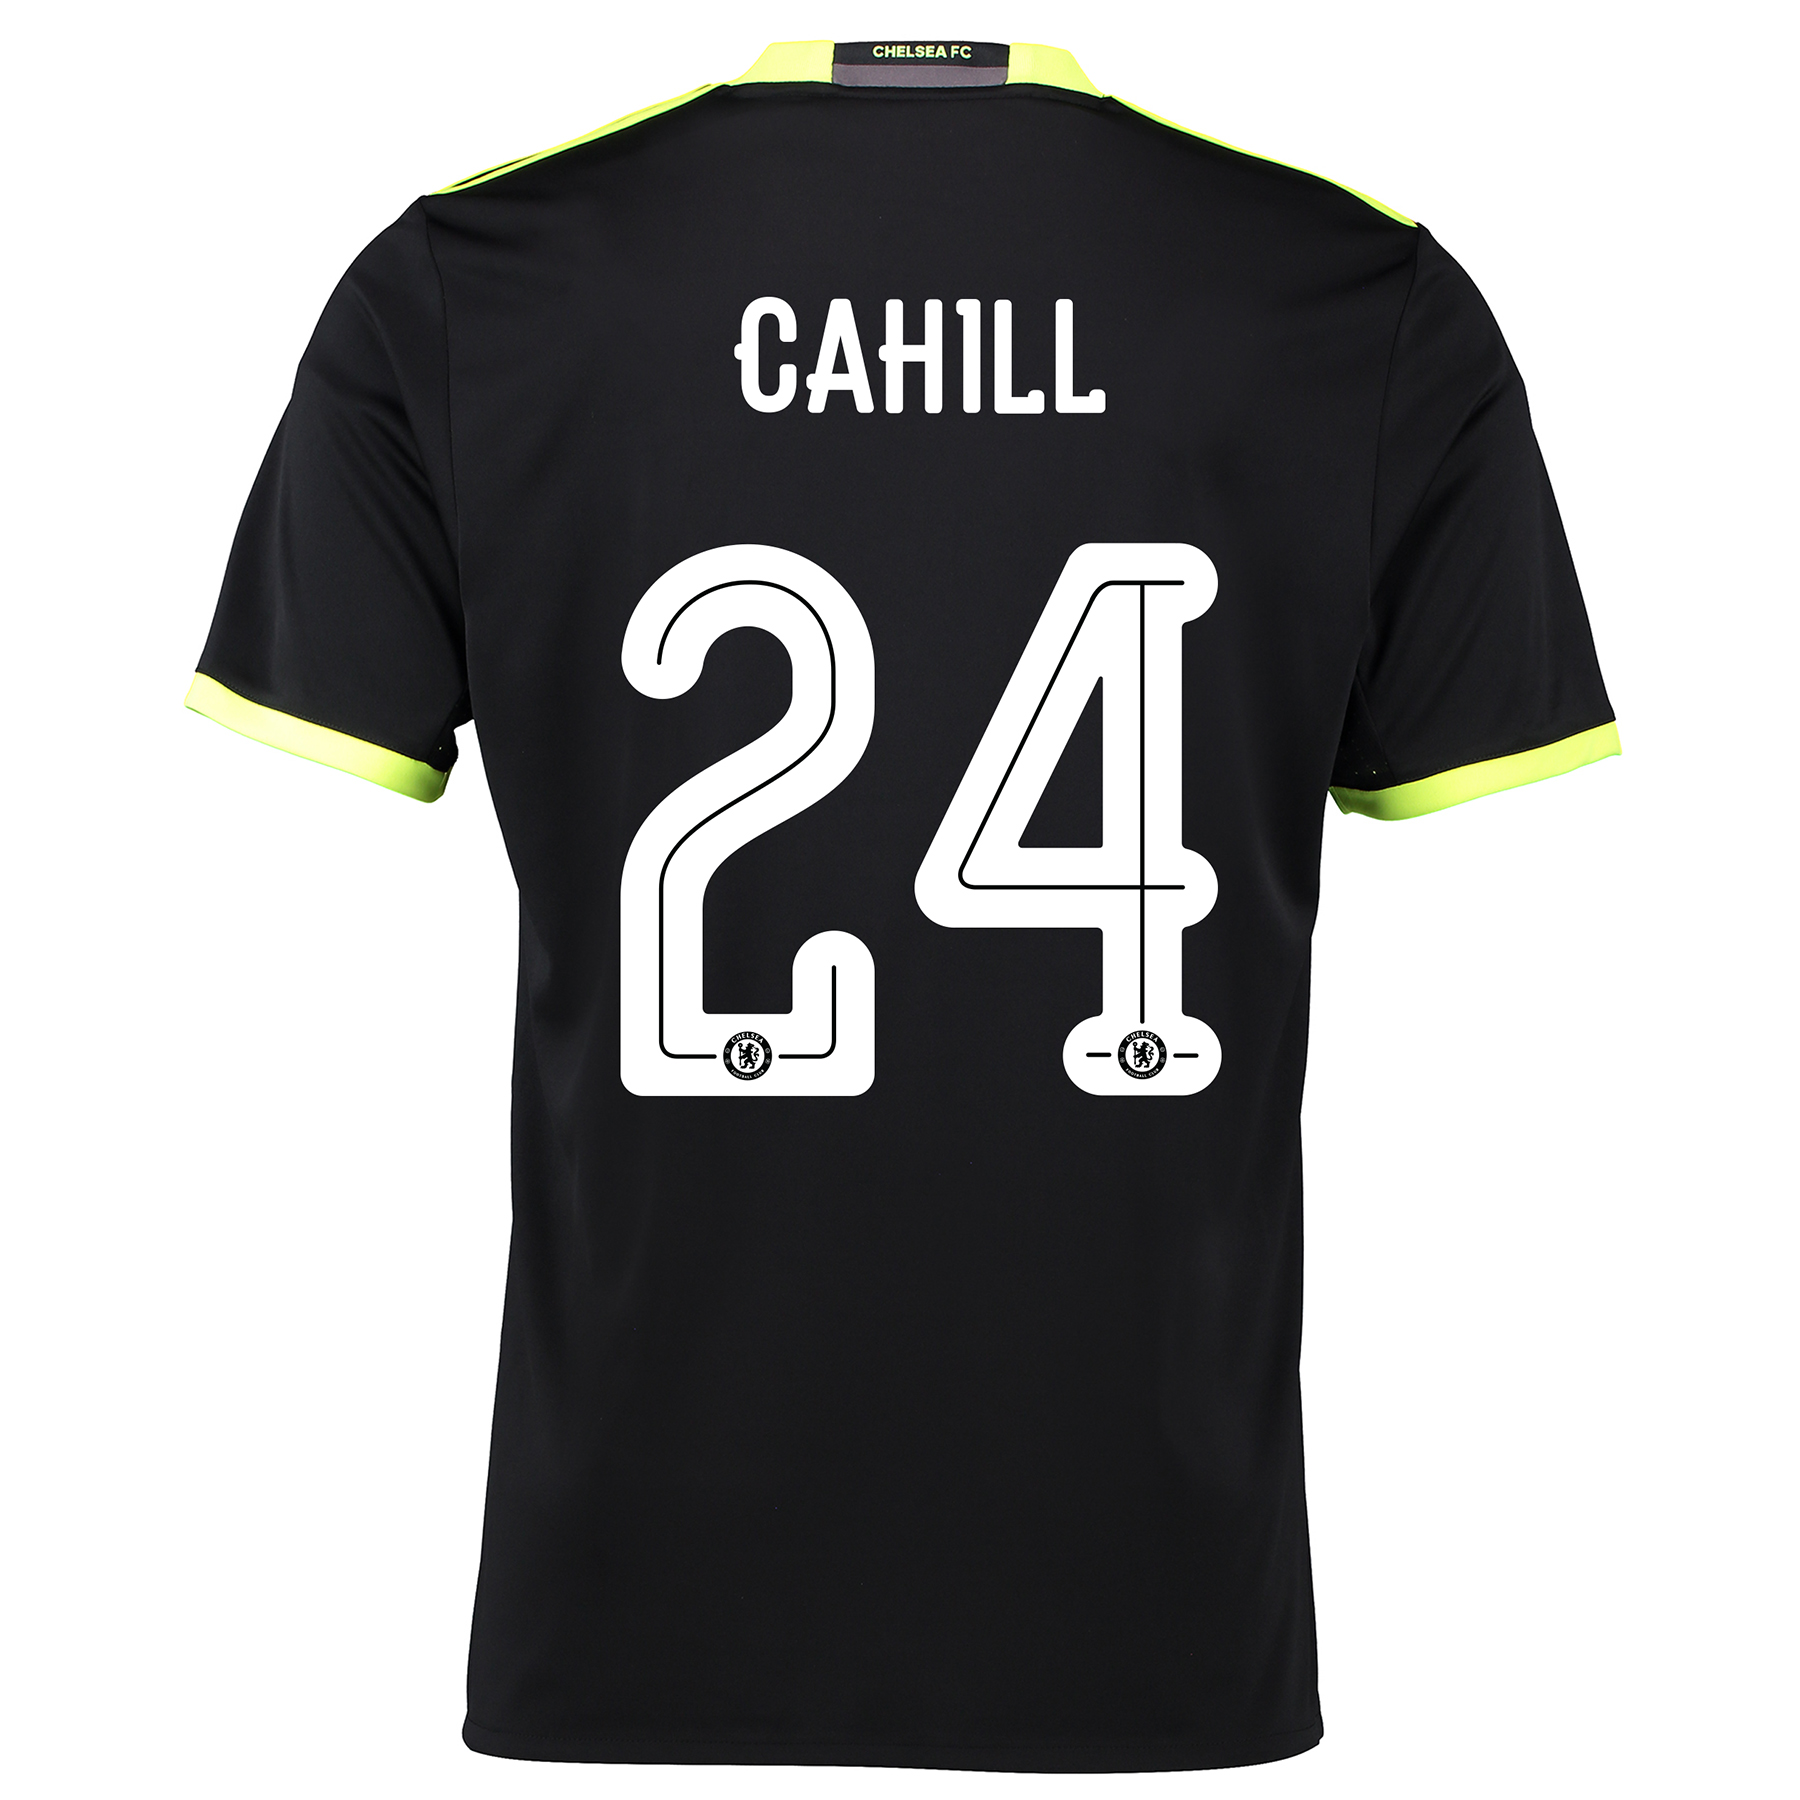 Chelsea Linear Away Shirt 16-17 with Cahill 24 printing